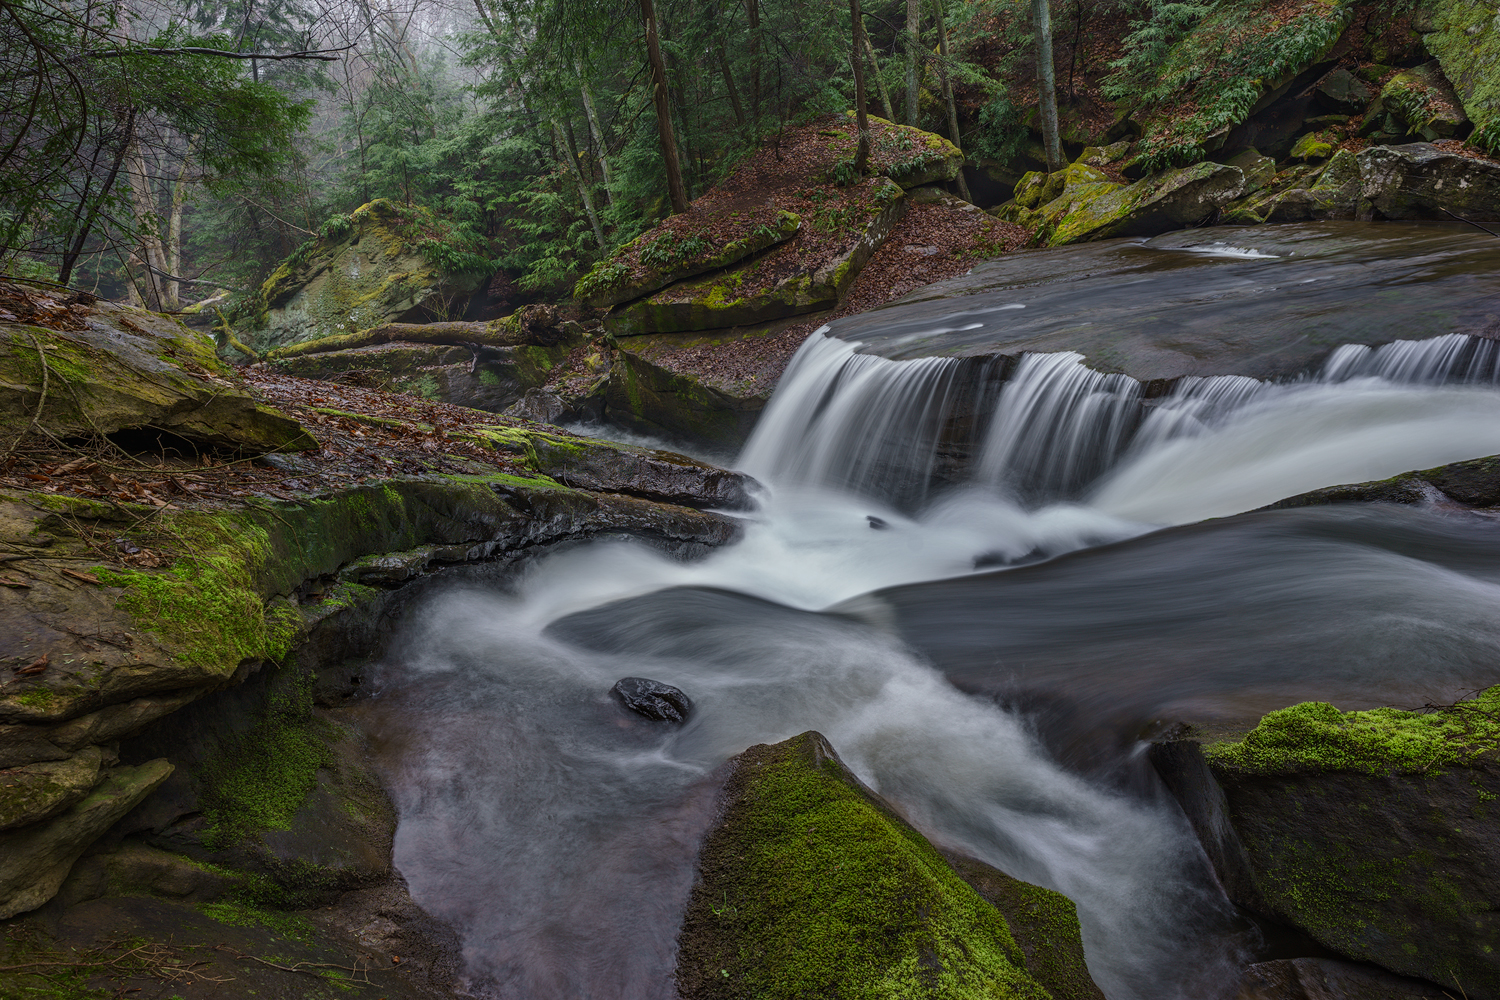 The sweeping forms of the rocks force the creek into a narrow slot and over a hanging sandstone shelf. Shot with a Sony a7II and a Zeiss Loxia 21mm, f2.8. Image exposed at ISO 50, at f11 for 3.0 seconds.